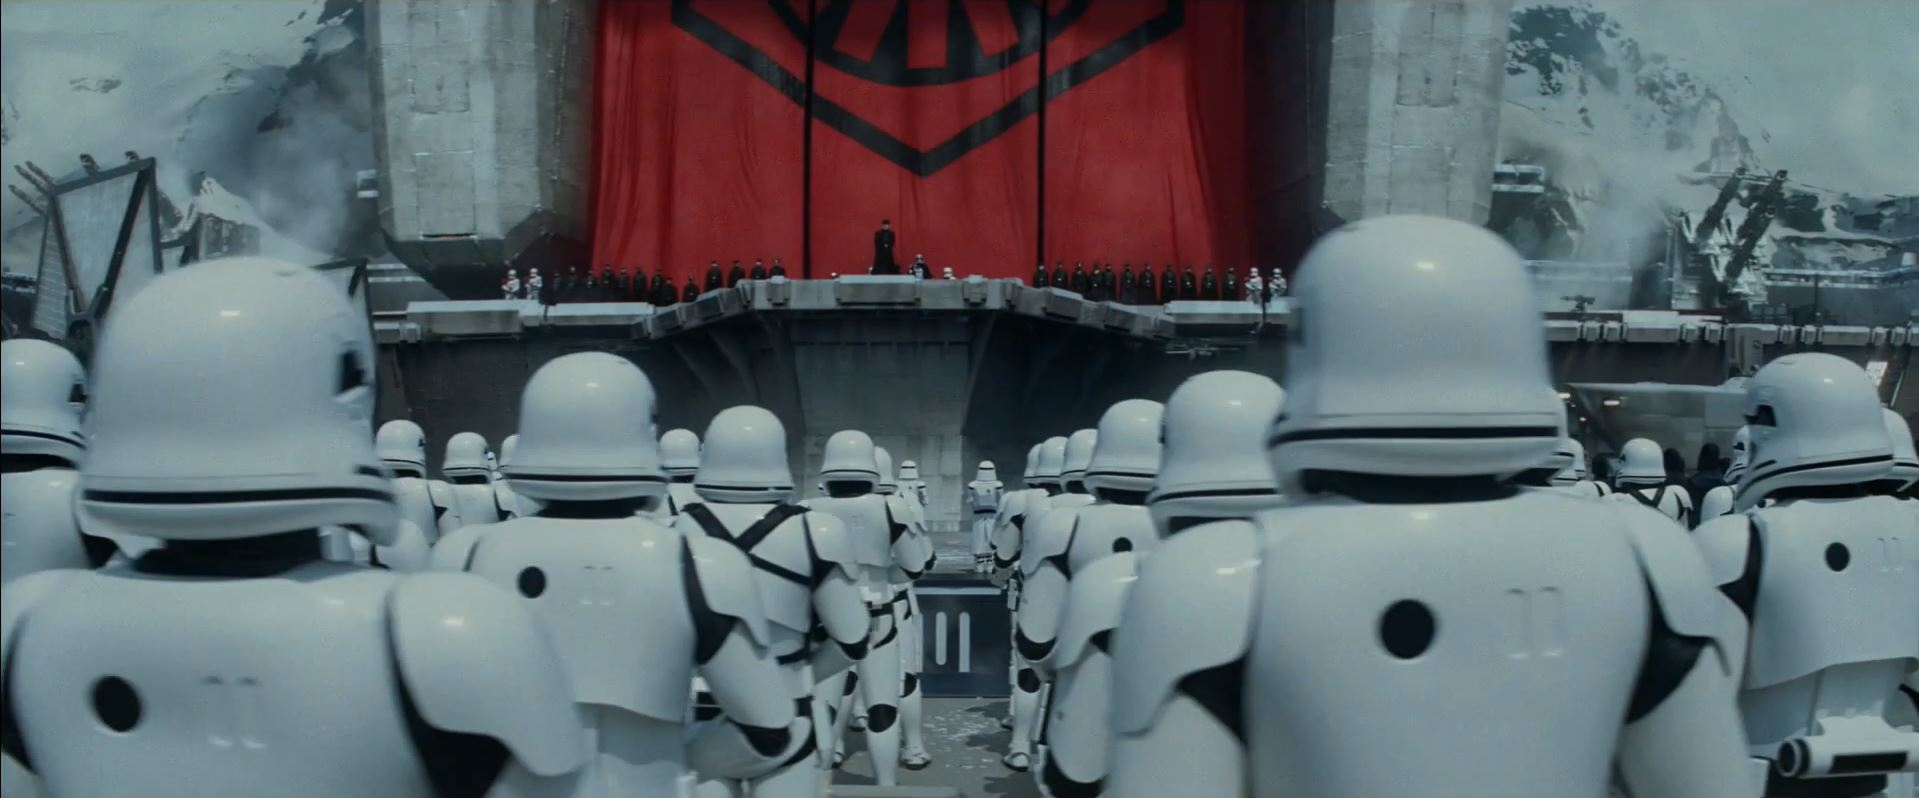 General Hux addresses the troops